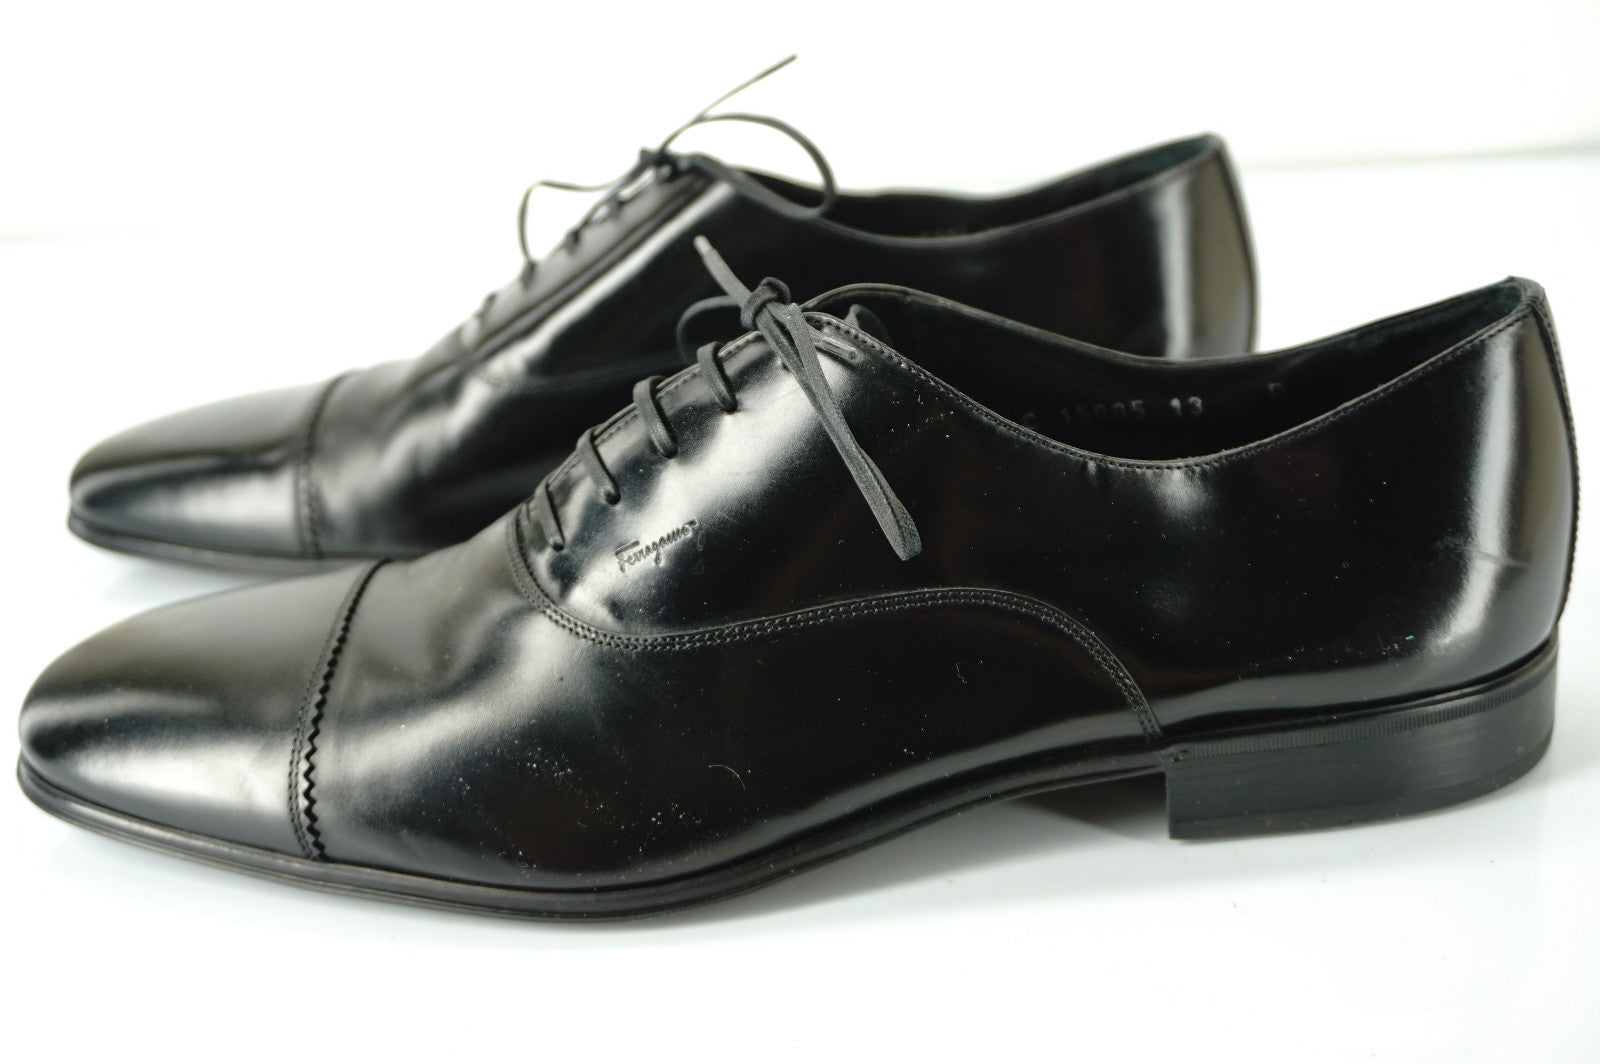 Salvatore Ferragamo Remigio Black Leather Oxfords Shoes size 13 D cap toe $560